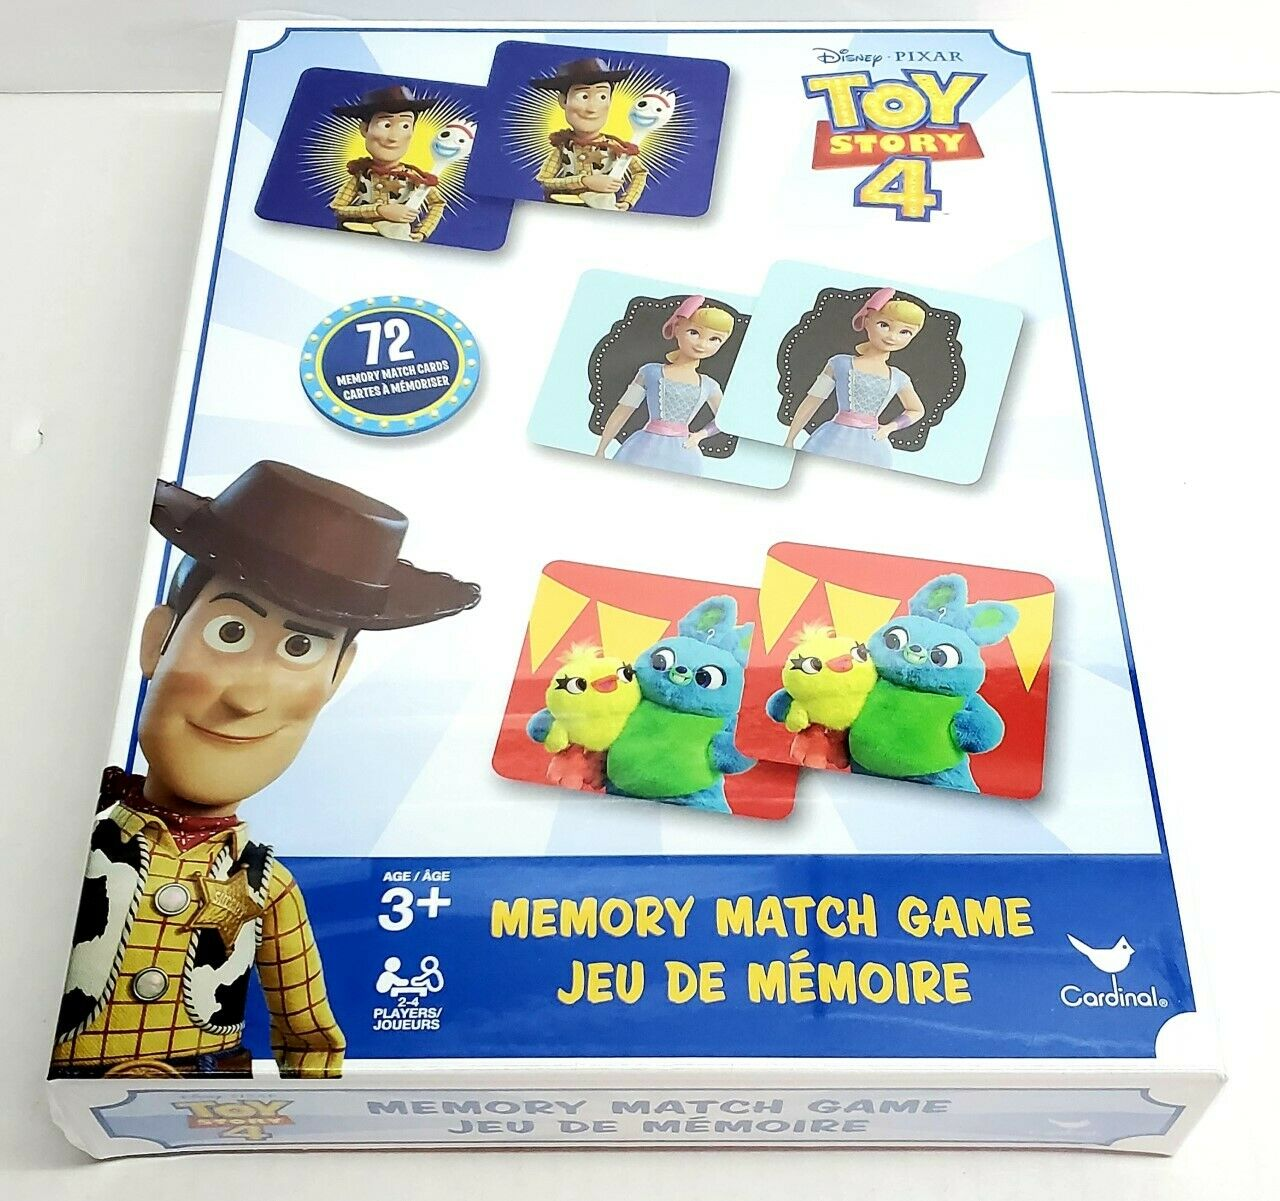 DISNEY PIXAR TOY STORY 4 Memory Match Game Cards Kids Educational NEW 1